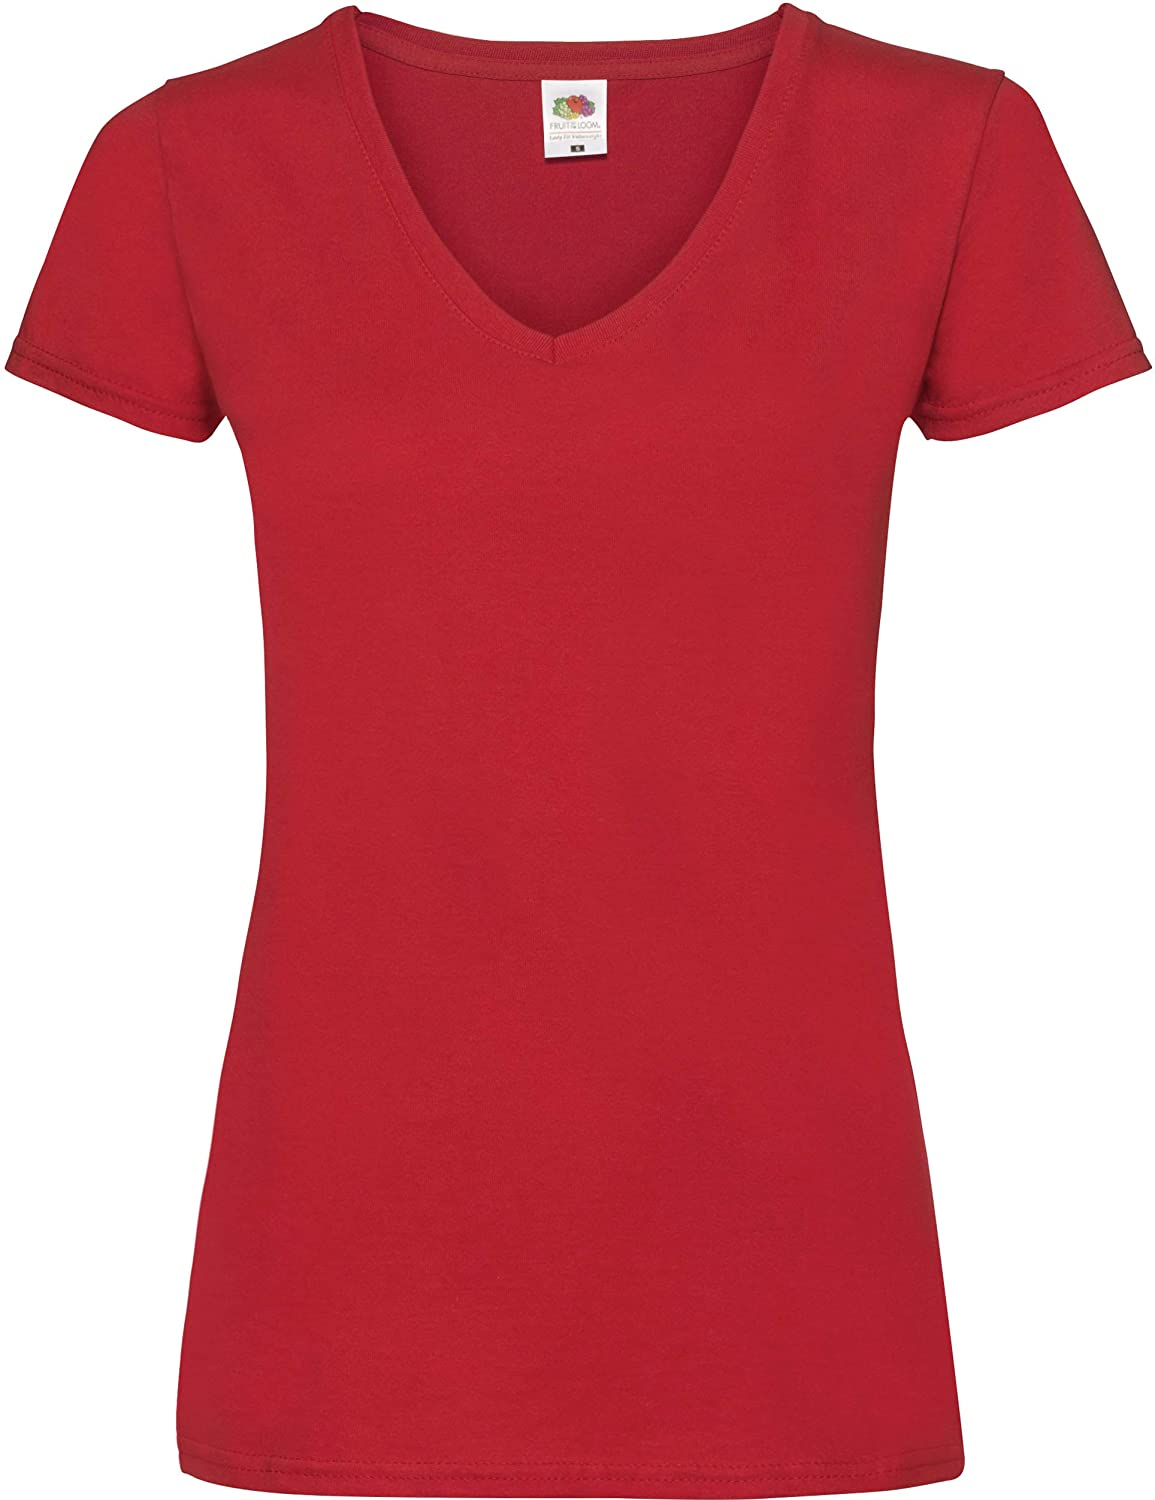 Lady-Fit Valueweight V-Neck T-Shirt von Fruit of the Loom 61-398-0